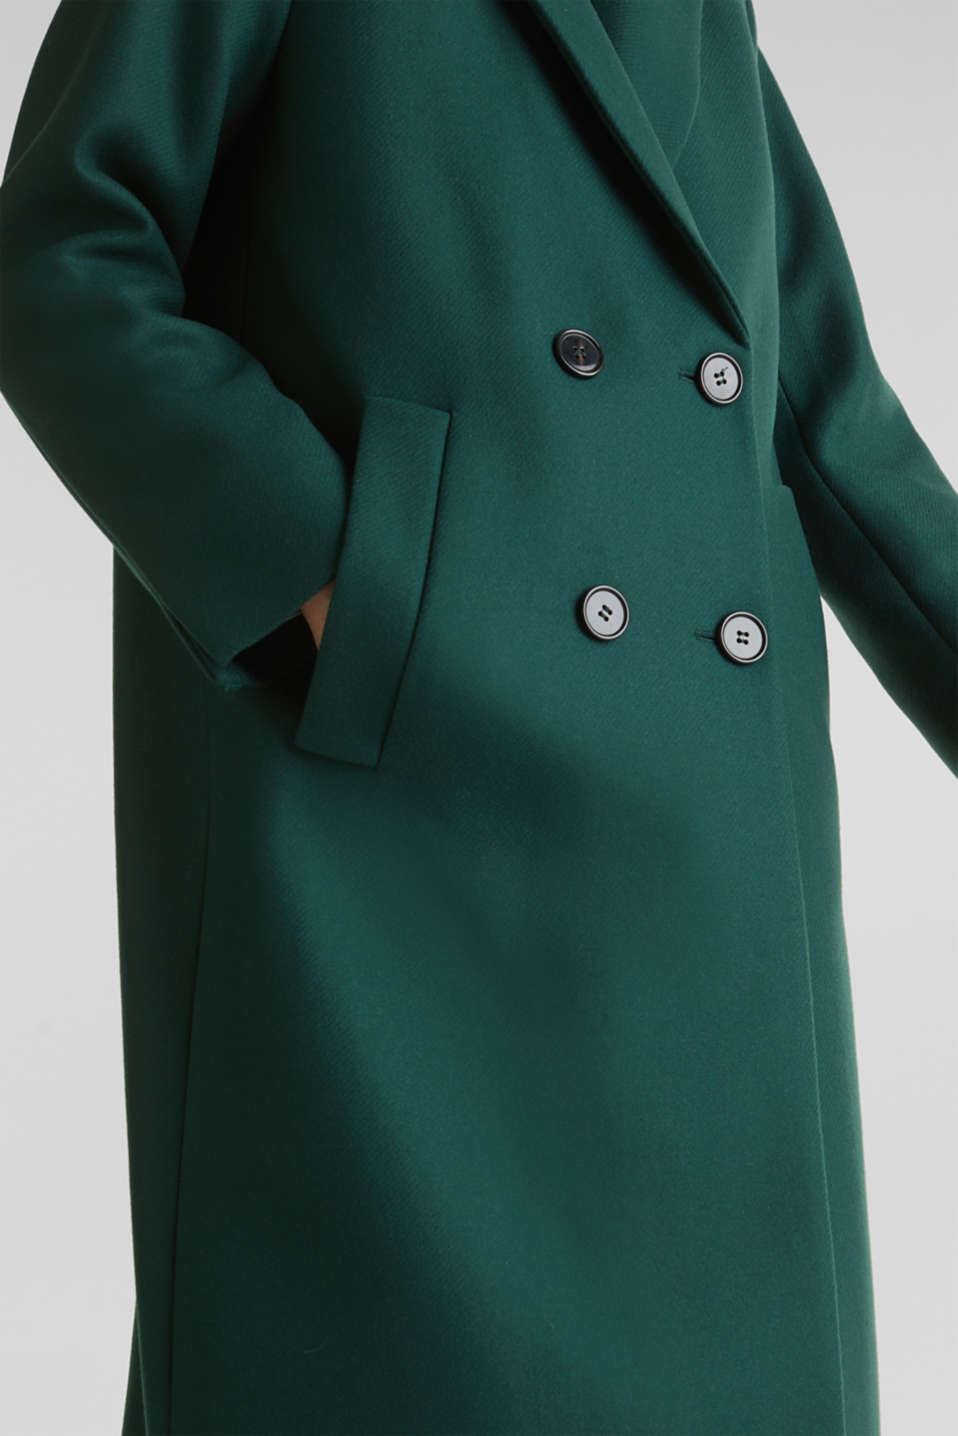 Wool blend: Coat made of Italian yarn, BOTTLE GREEN, detail image number 2